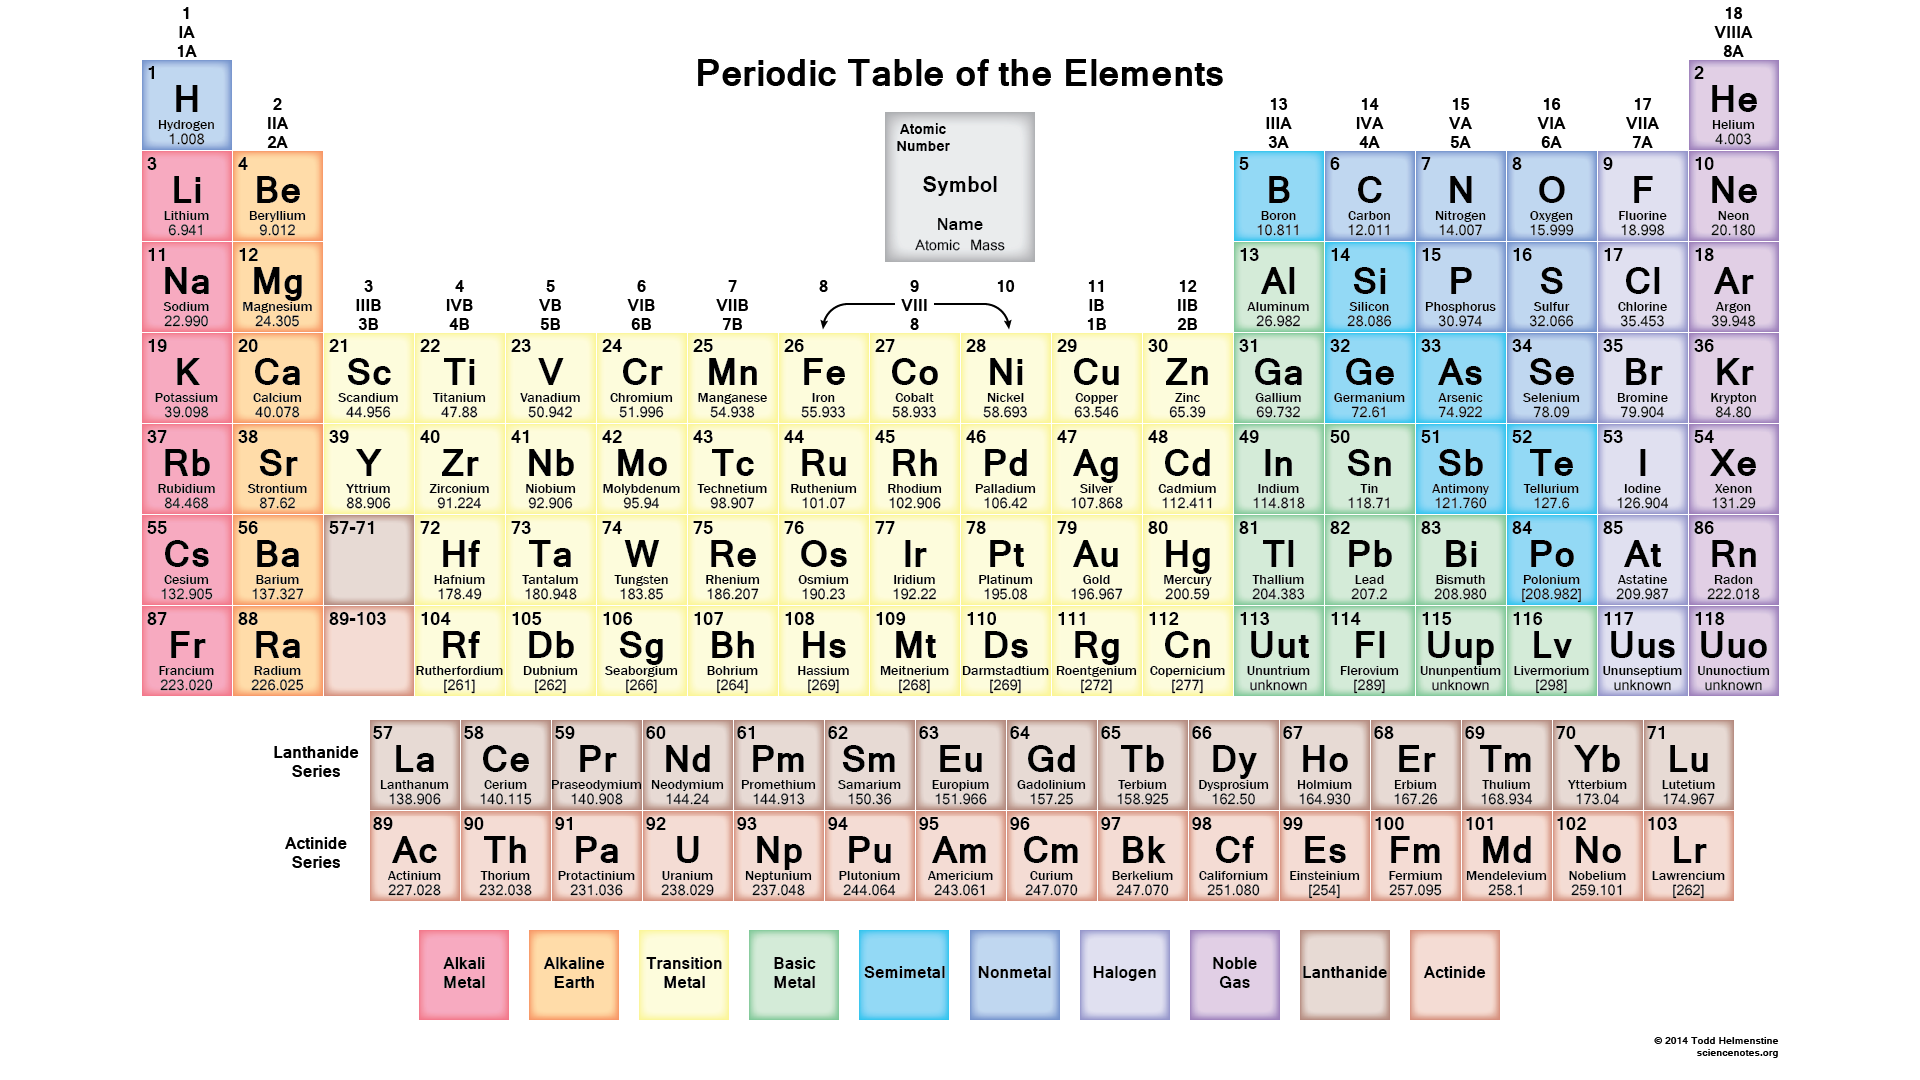 Muted colors printable periodic table wallpaper colored but not muted colors printable periodic table wallpaper colored but not hard to read when its printed urtaz Image collections